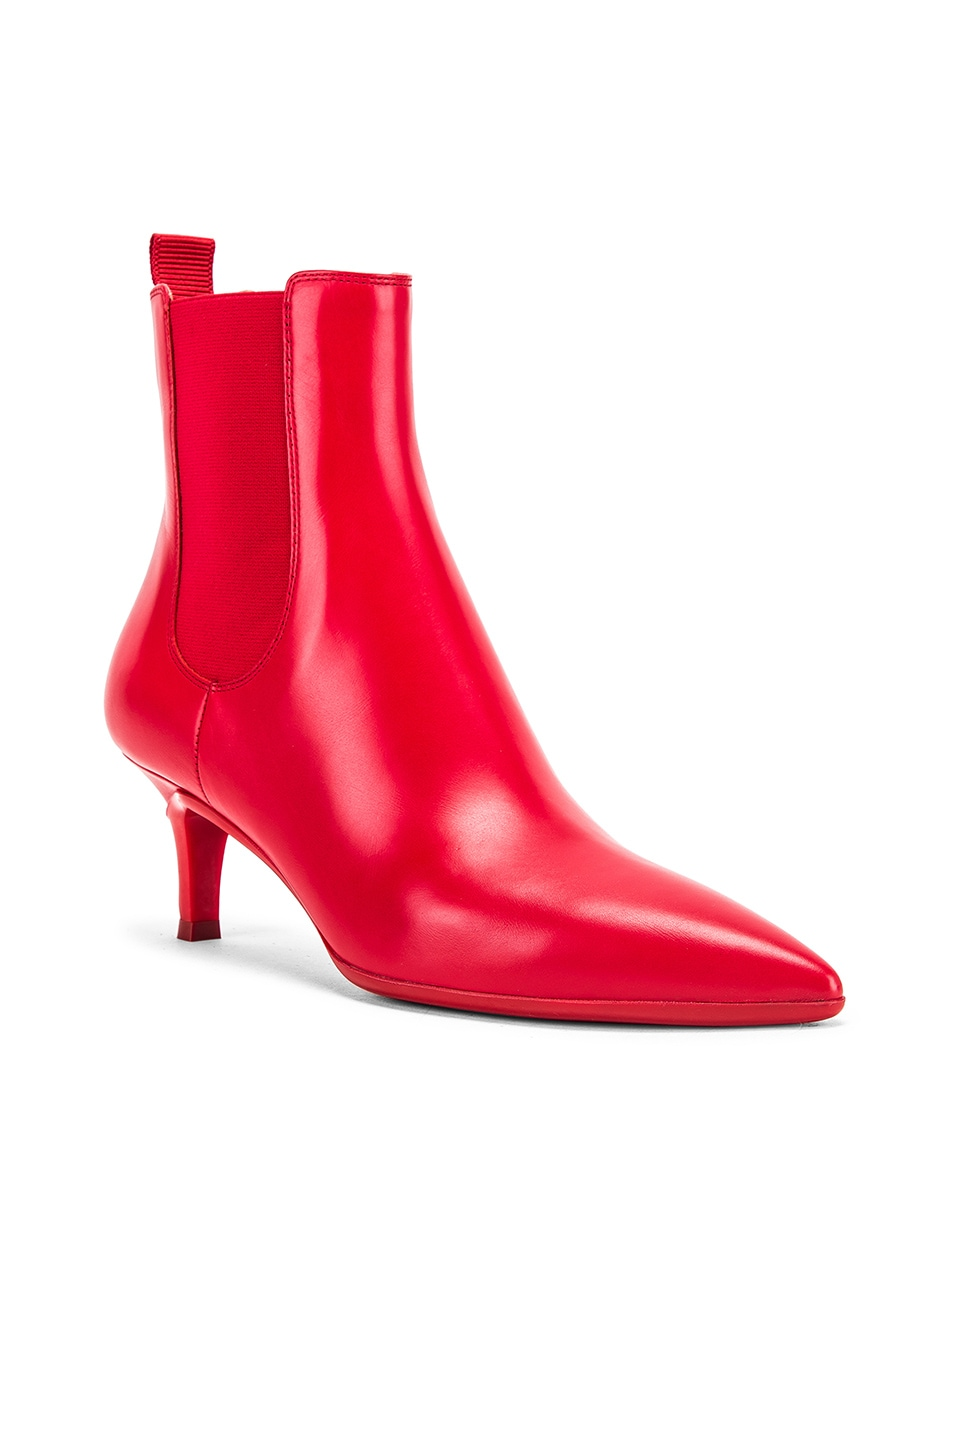 Image 2 of Gianvito Rossi Ankle Bootie in Tabasco Red